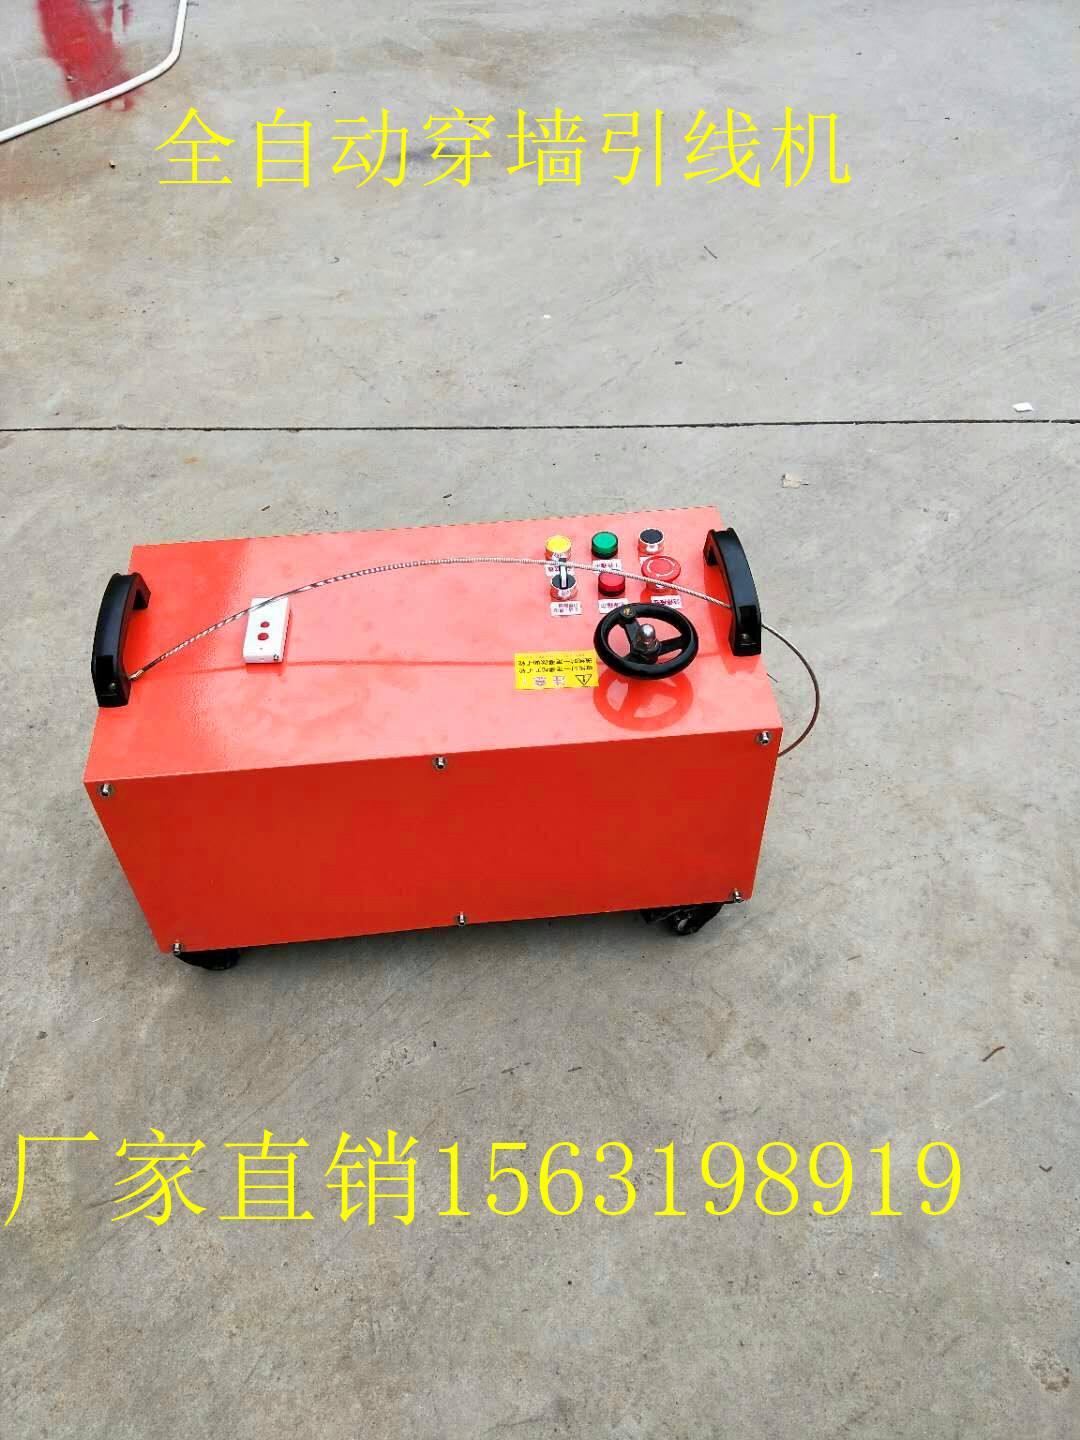 Full automatic wire threading device of automatic machine electrical electrician threading machine area real special threading machine